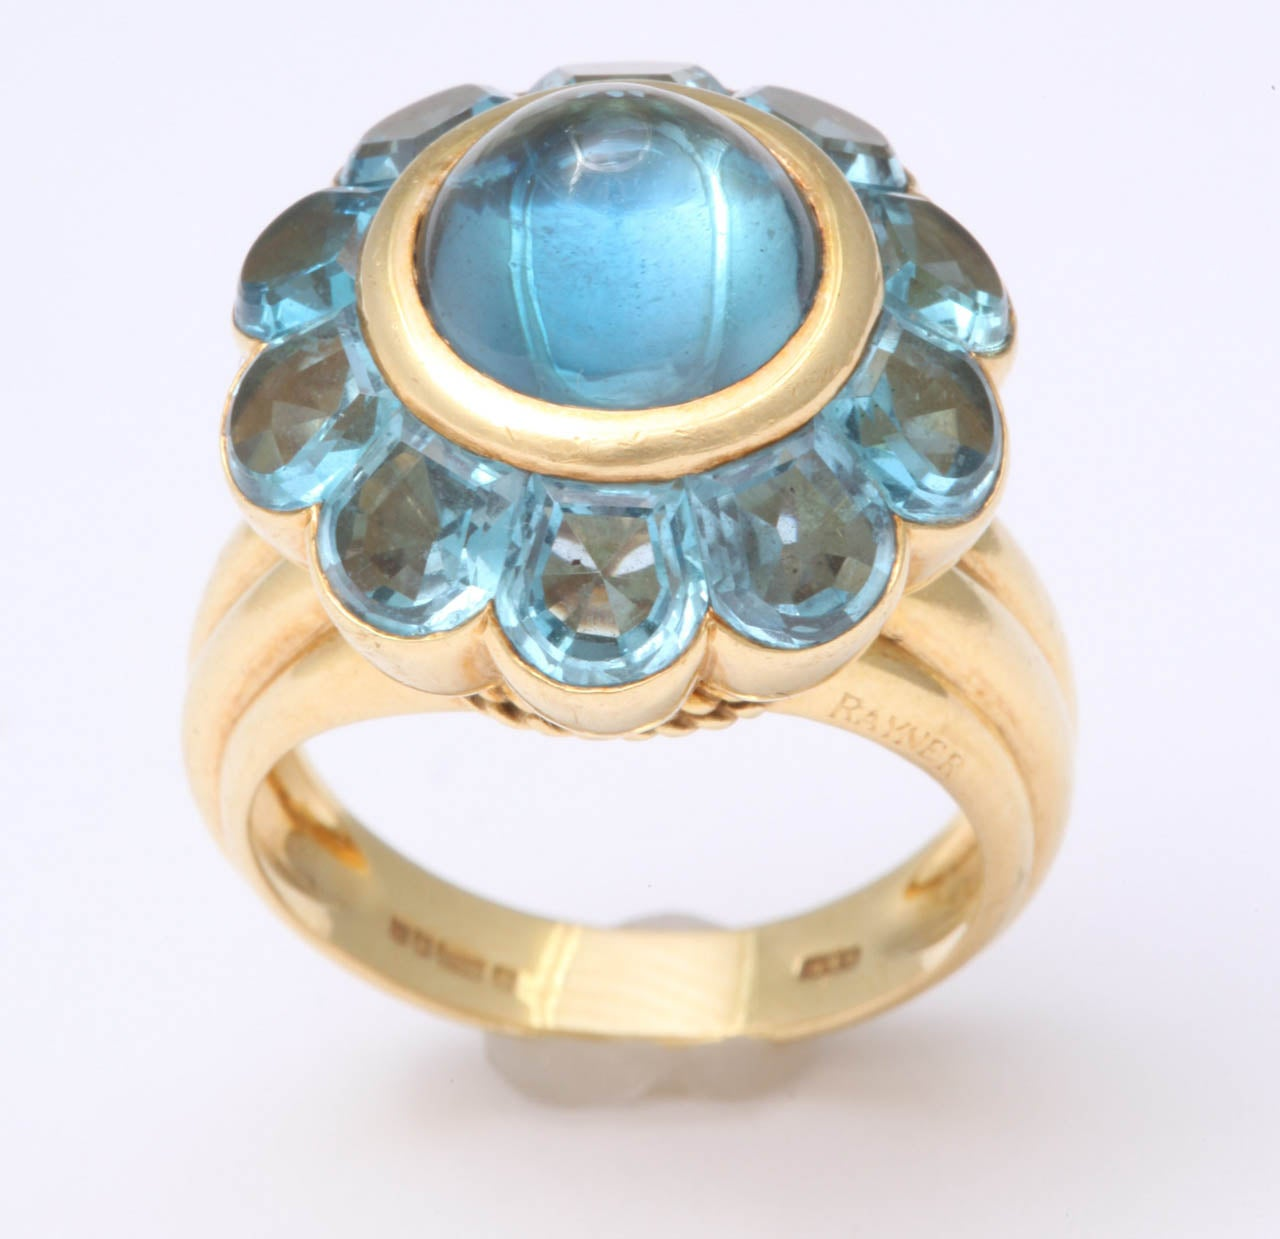 18Kt Yellow Gold ring set with Faceted Blue Topaz stones and a center Cabochon Blue Topaz  stone.  Signed Rayner on the outer shank and marked with British gold marks on the interior shank.